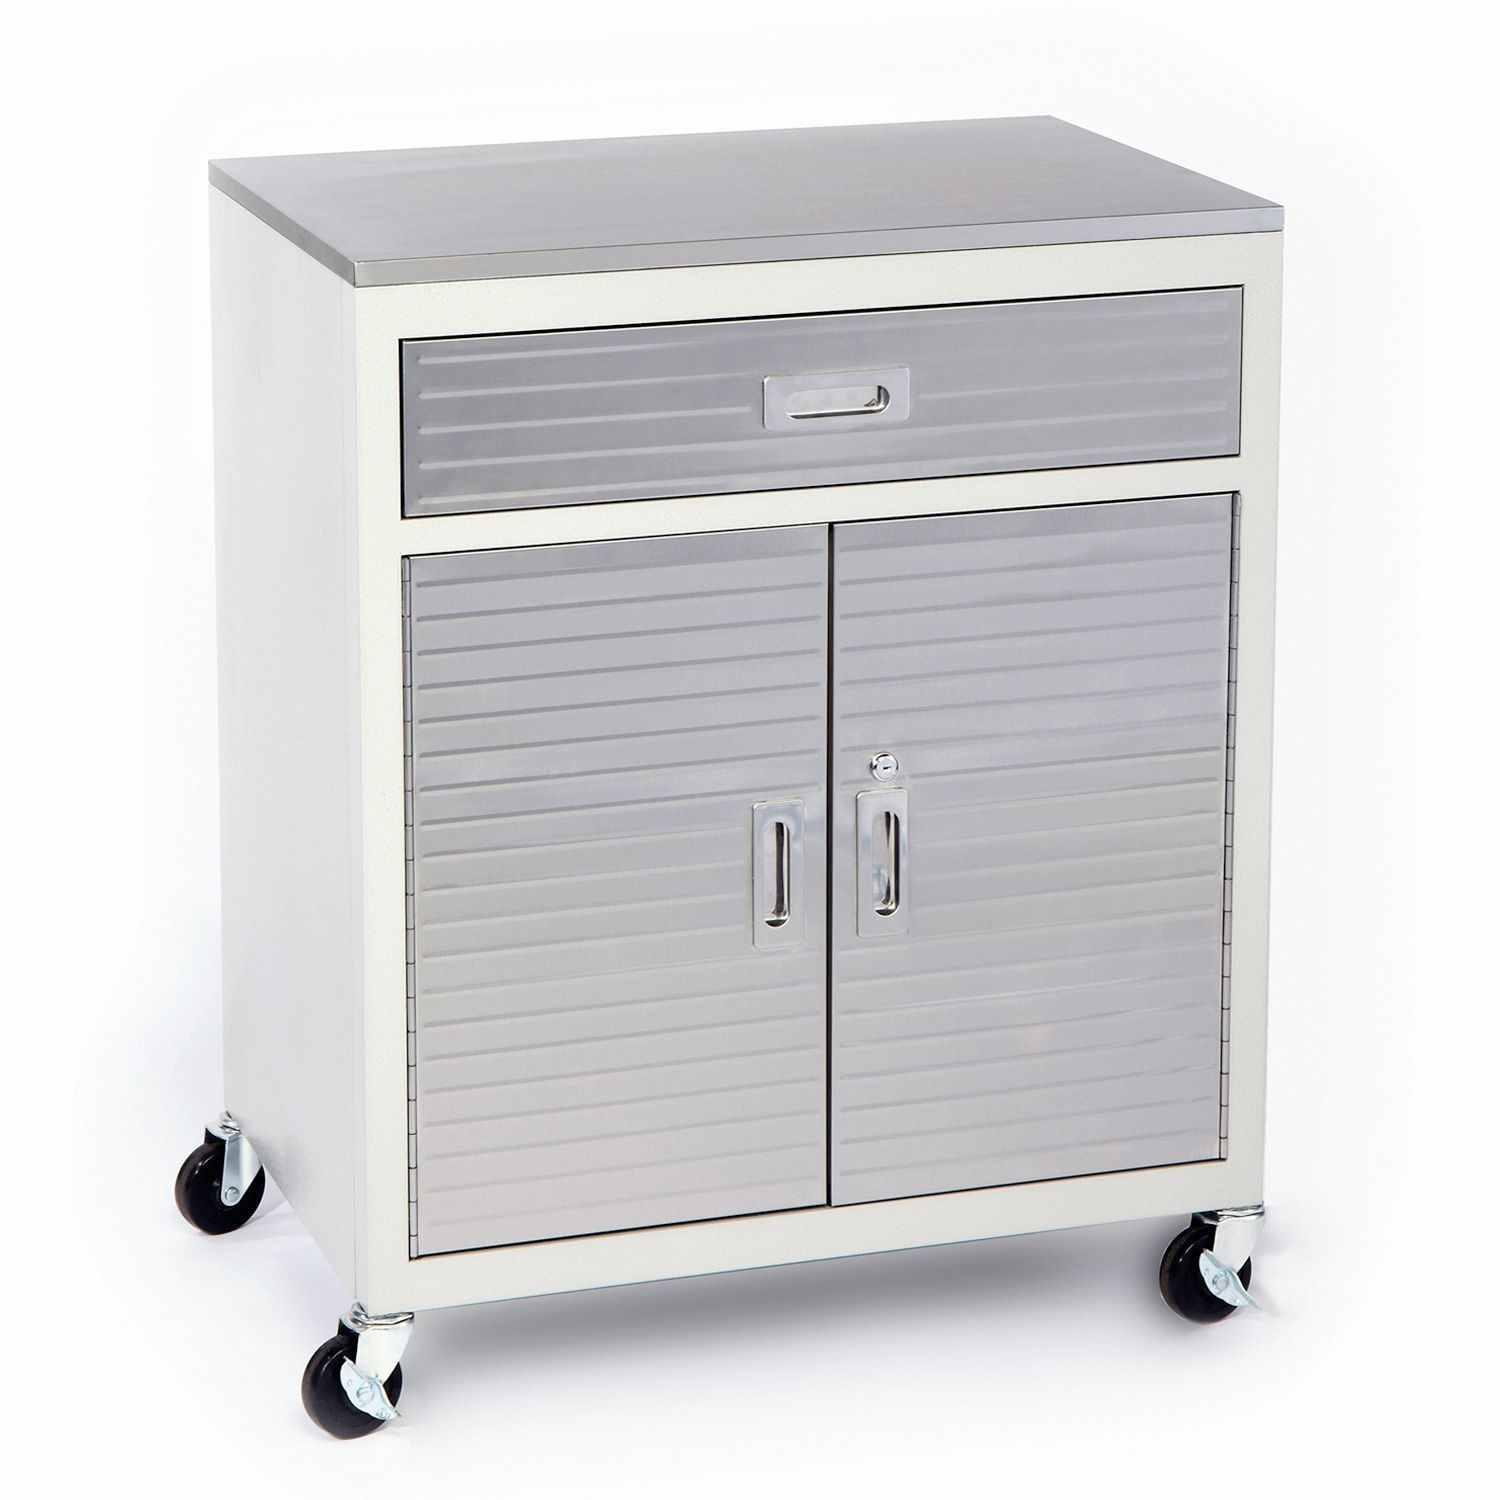 Storage Cabinet With Drawers On Wheels